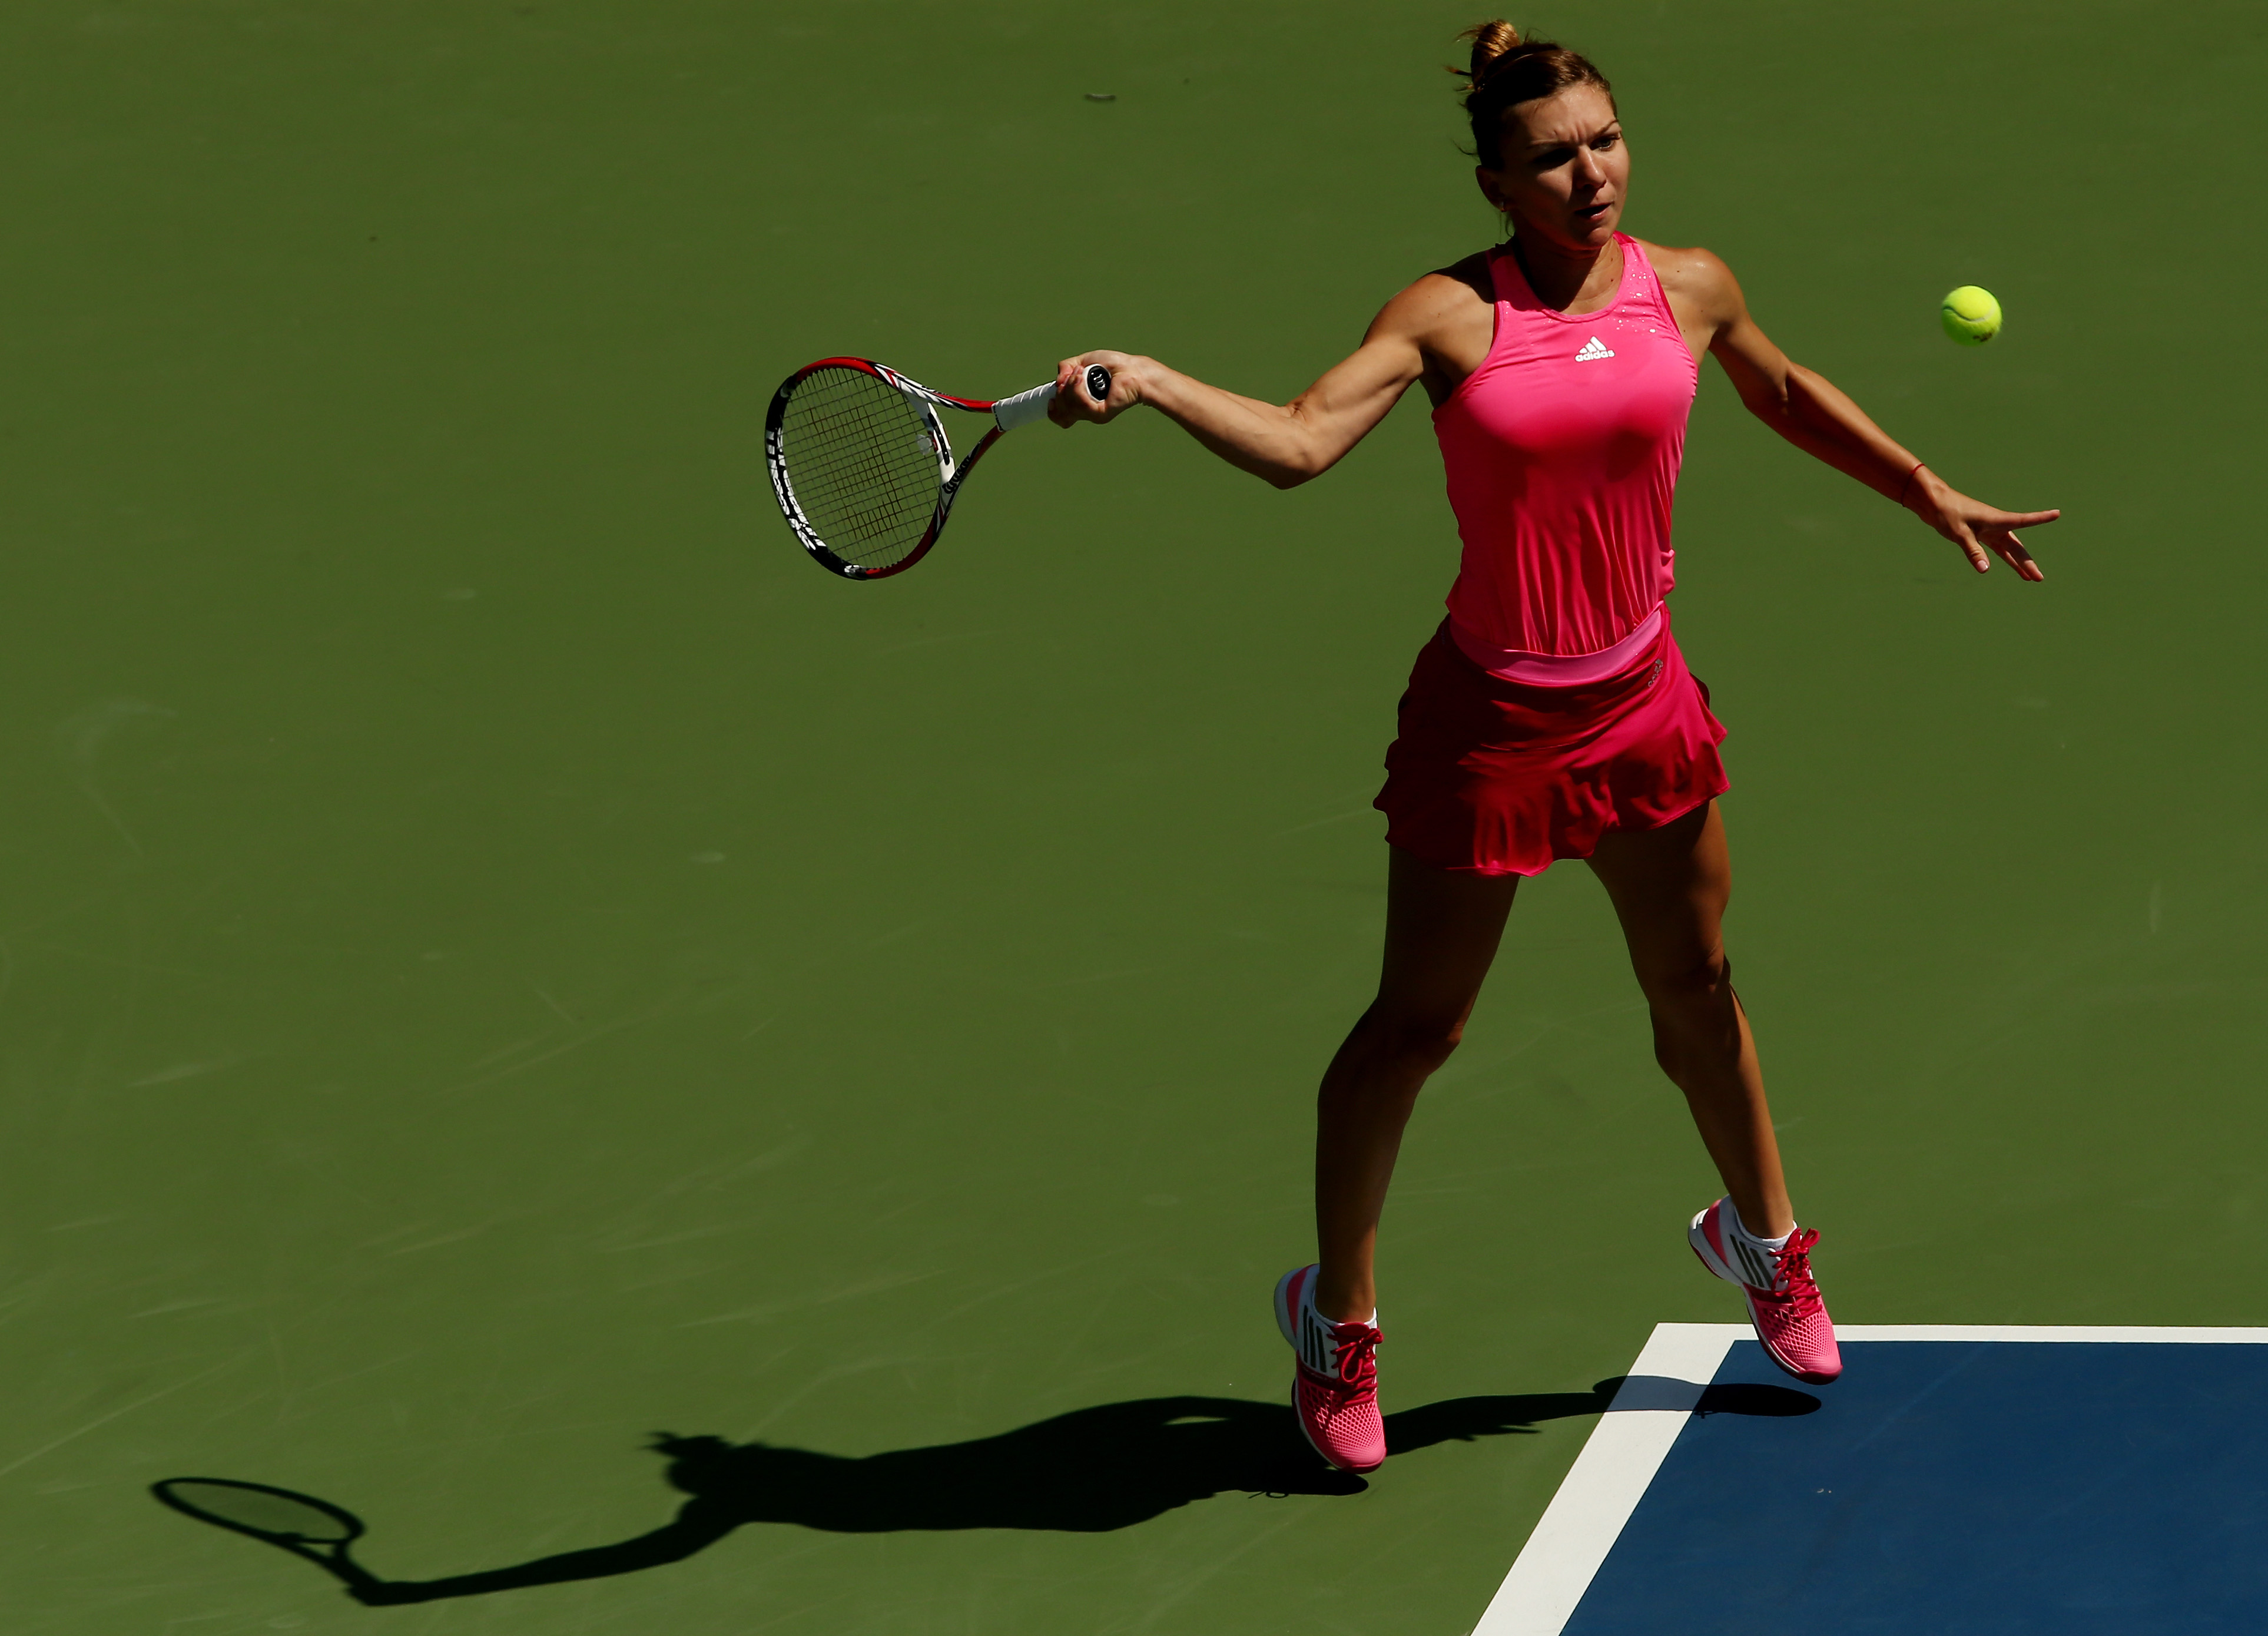 Leave it to Halep to make an all-pink outfit look jockish.